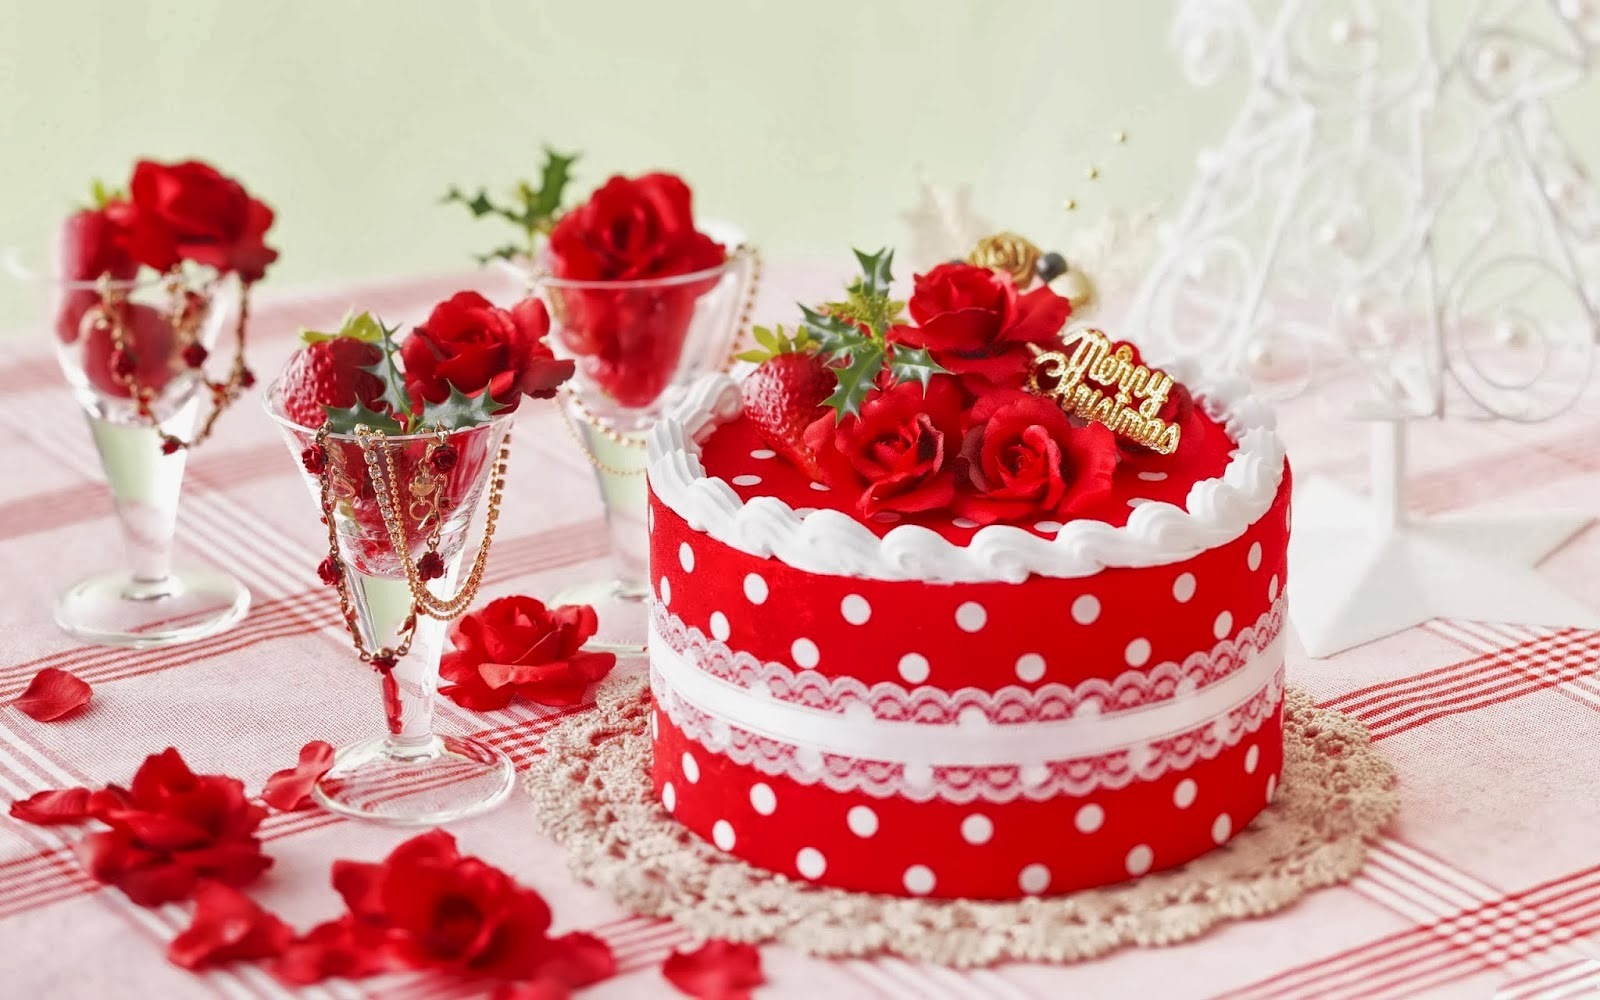 Christmas Cakes Pictures  Christmas Cakes HD Wallpapers HD Wallpapers Blog